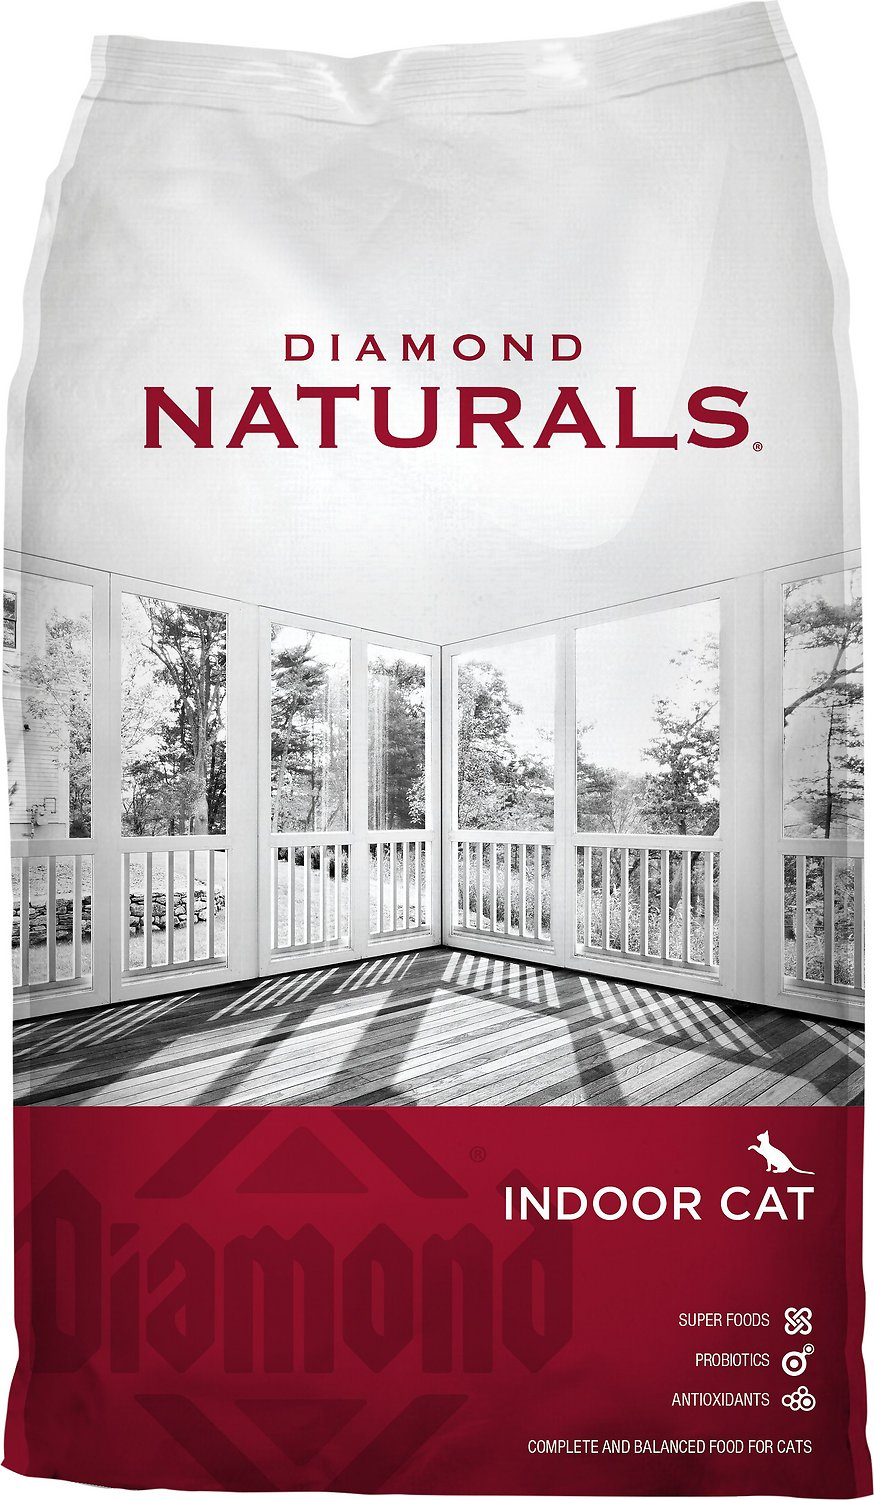 Diamond Naturals Indoor Formula Dry Cat Food Image